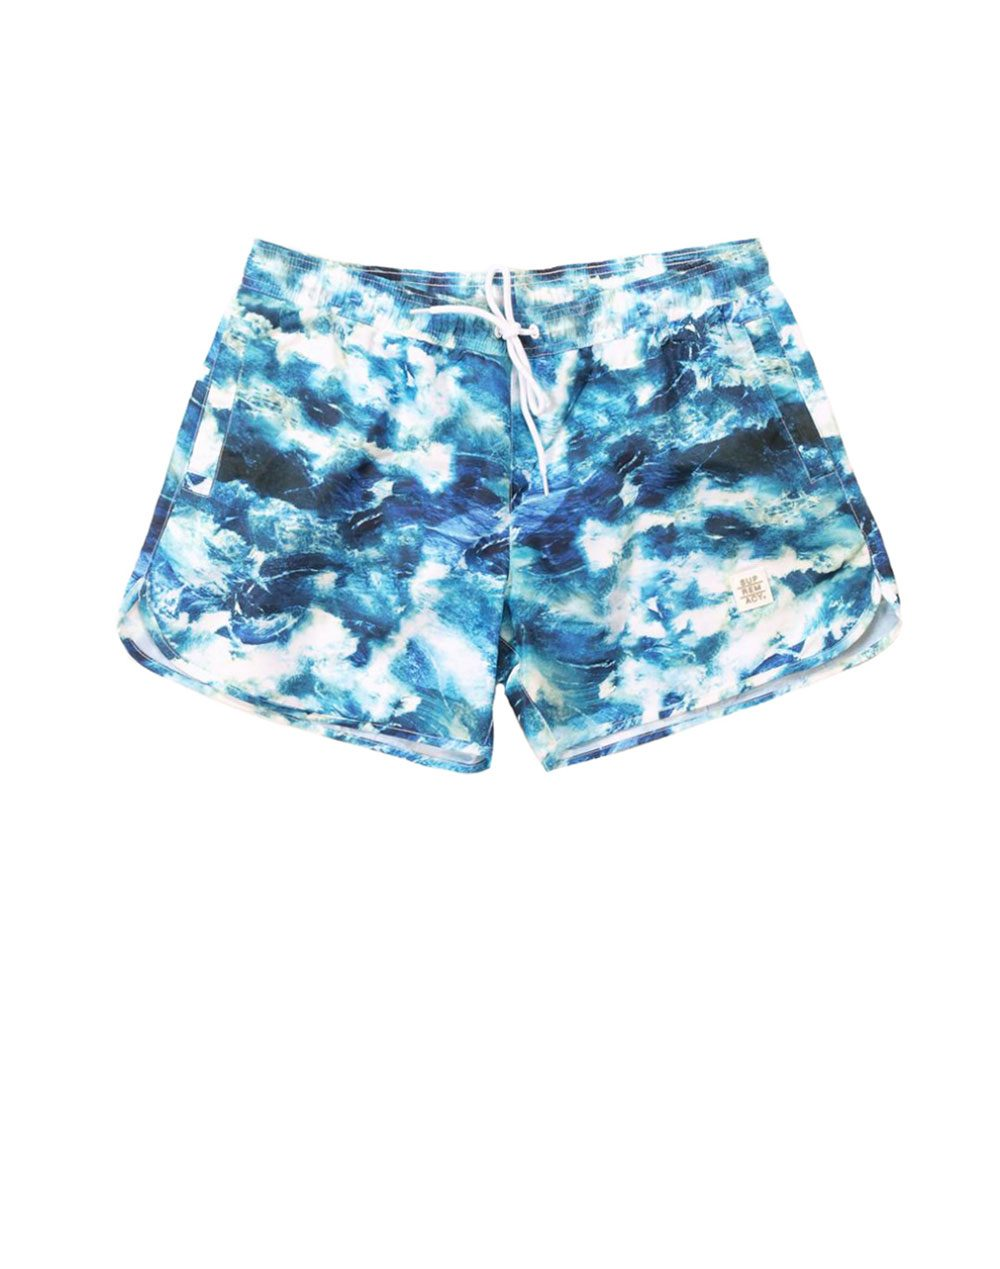 SUPREMACY RUSH VOLLEY SHORT 2 BLUE